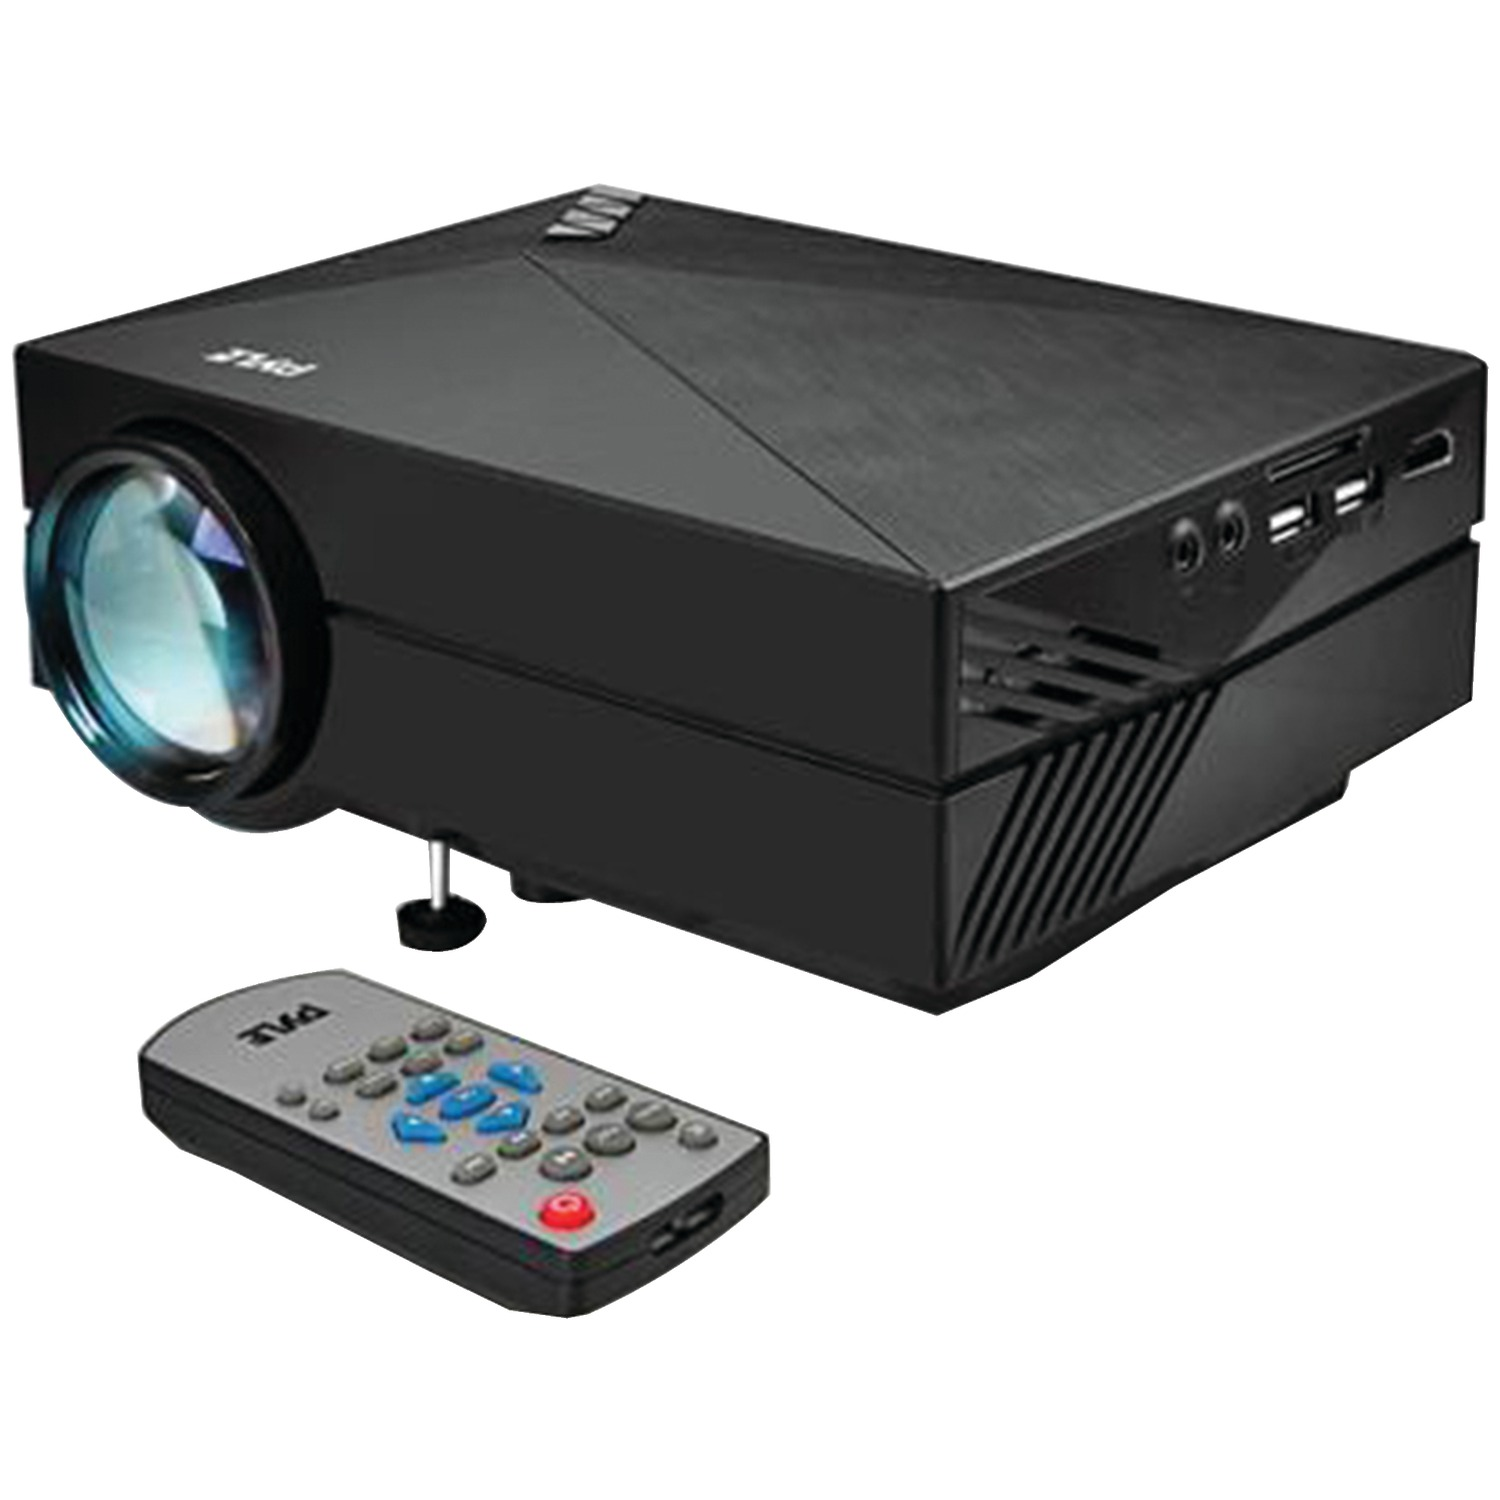 Pyle home prjg82 1080p hd compact digital multimedia for Best small hd projector